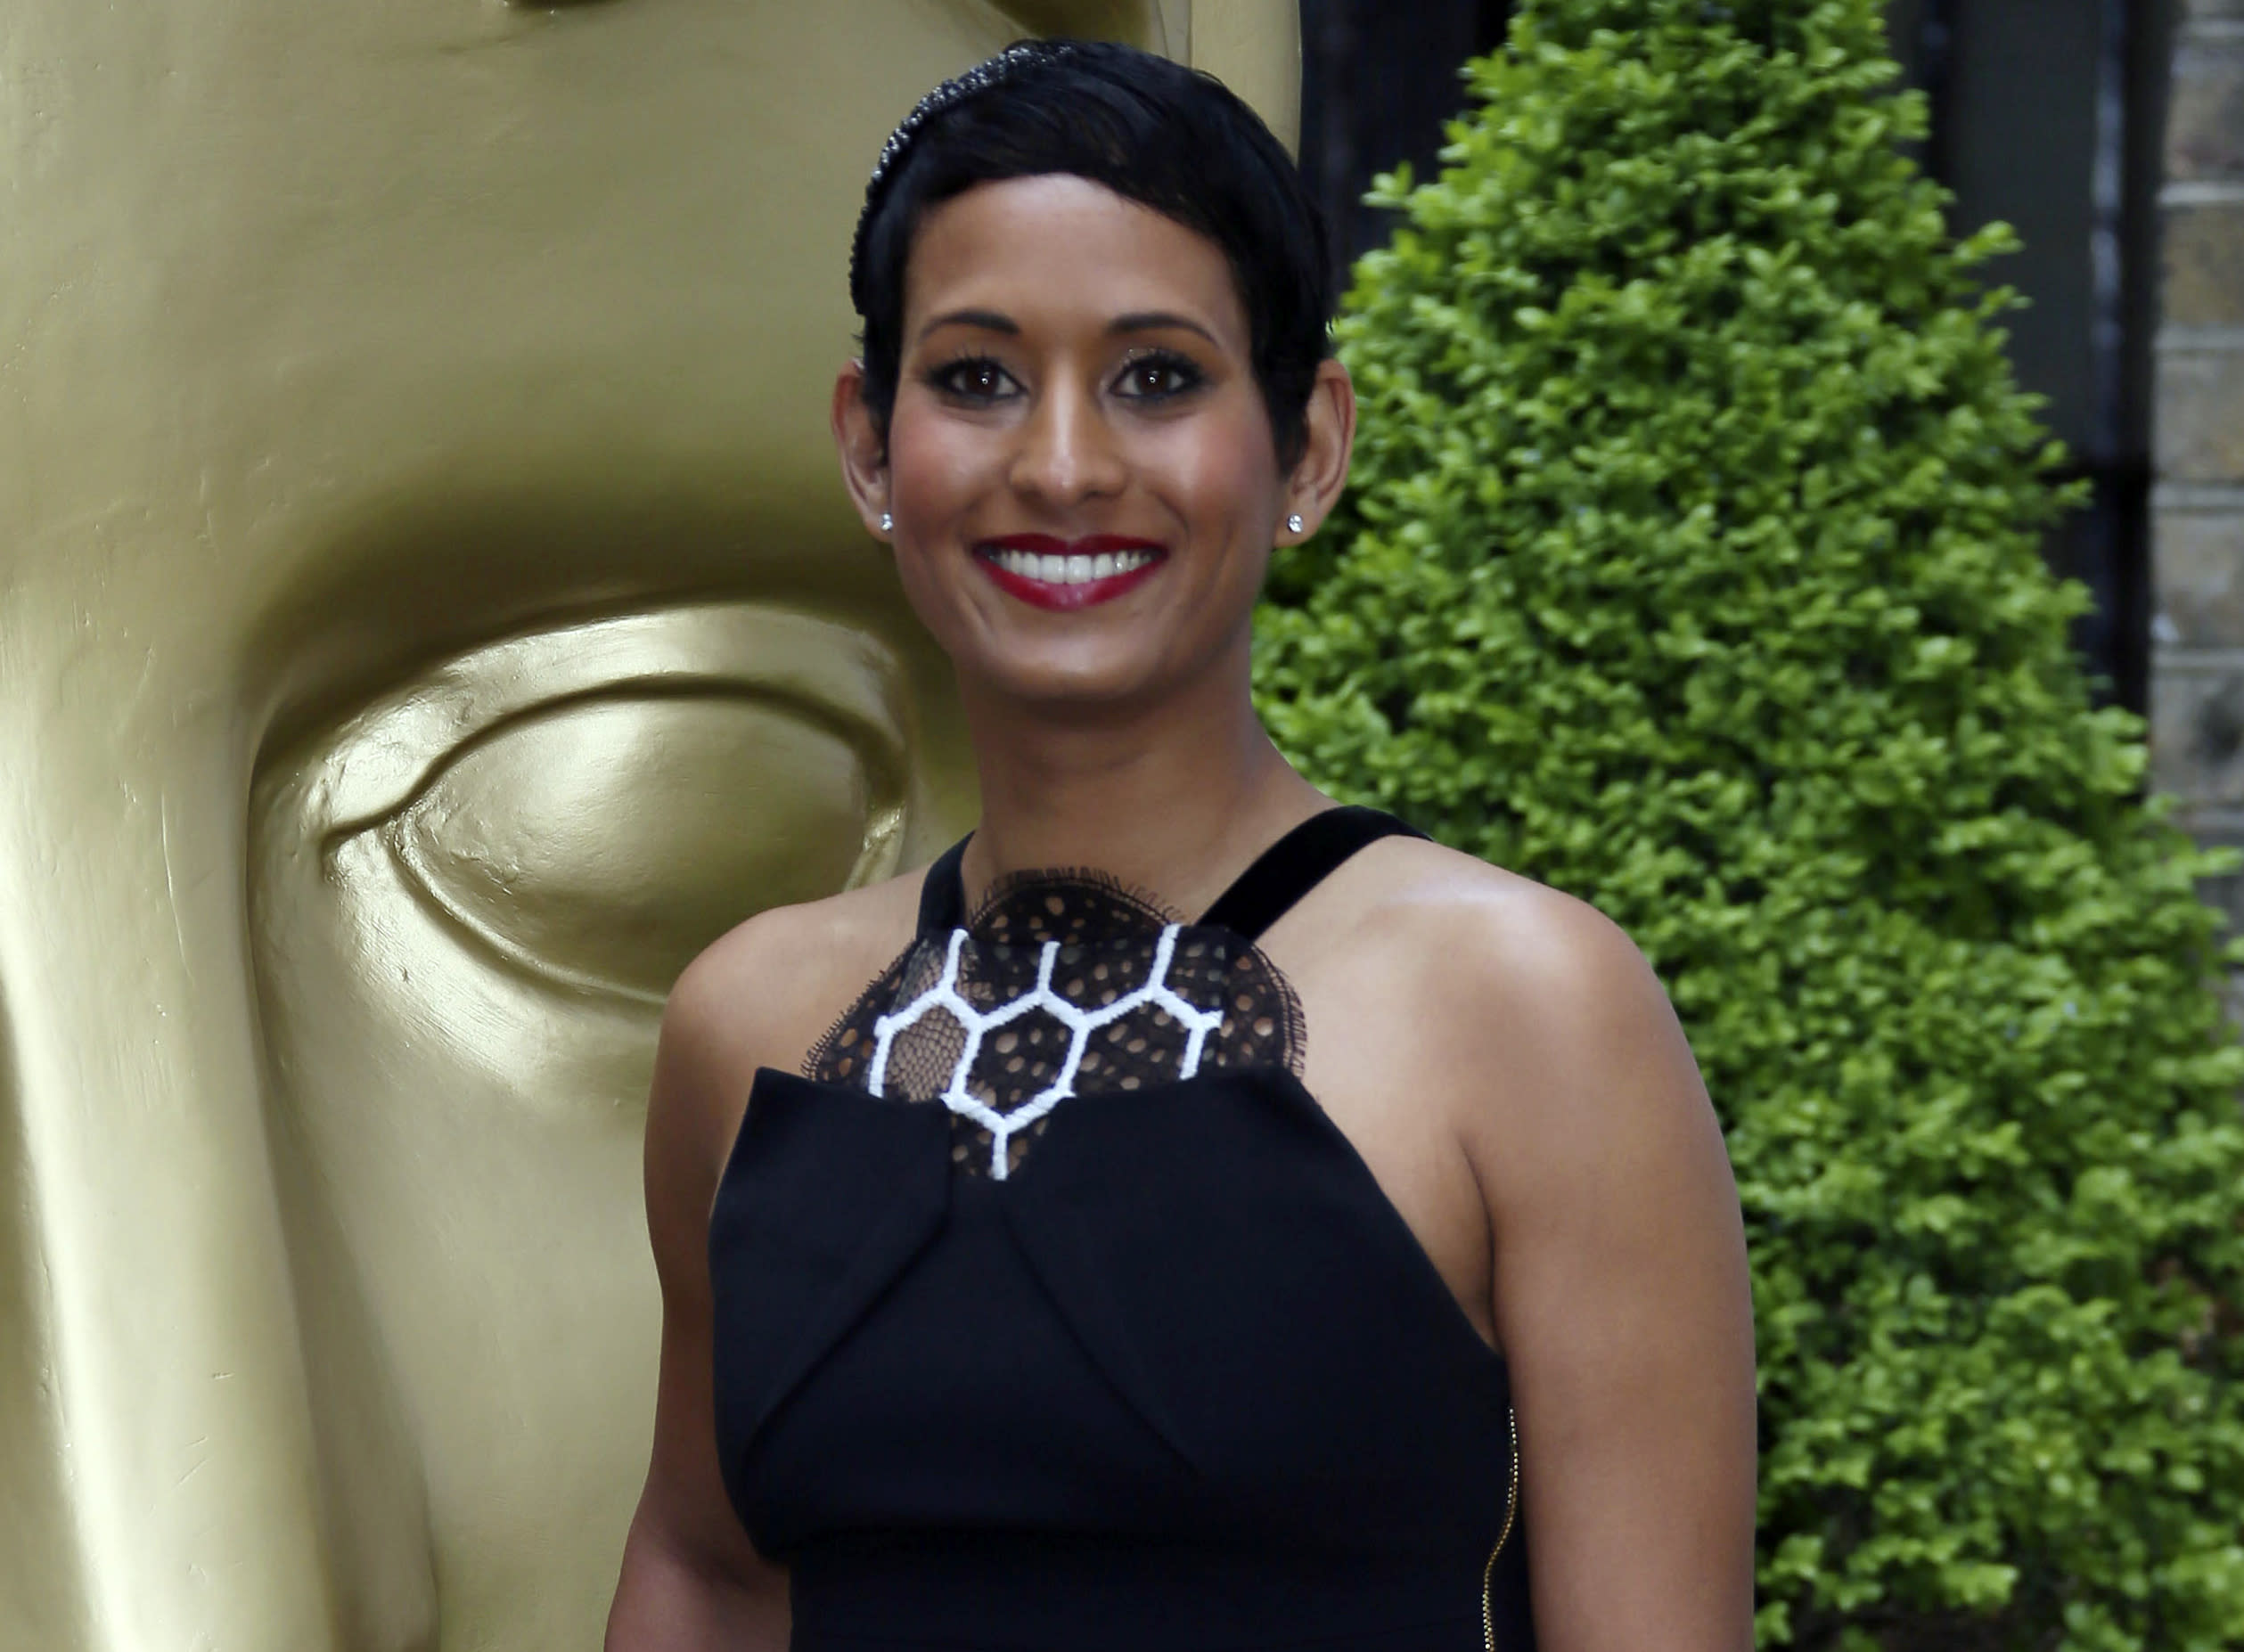 "FILE - In this Sunday, April 23, 2017 file photo, TV Presenter Naga Munchetty poses for photographers upon arrival at the British Academy Television and Craft Awards in east London. The BBC is facing a backlash after finding one of its presenters in breach of its editorial guidelines on impartiality for comments that were critical of U.S. President Donald Trump. Journalists and celebrities are on Friday, Sept, 27, 2019 demanding the BBC overturn its decision, expressing support for BBC Breakfast anchor Naga Munchetty, who was discussing Trump's remark on July 17 that four female American lawmakers should return to the ""broken and crime infested places from which they came.''(Photo by Joel Ryan/Invision/AP, file)"